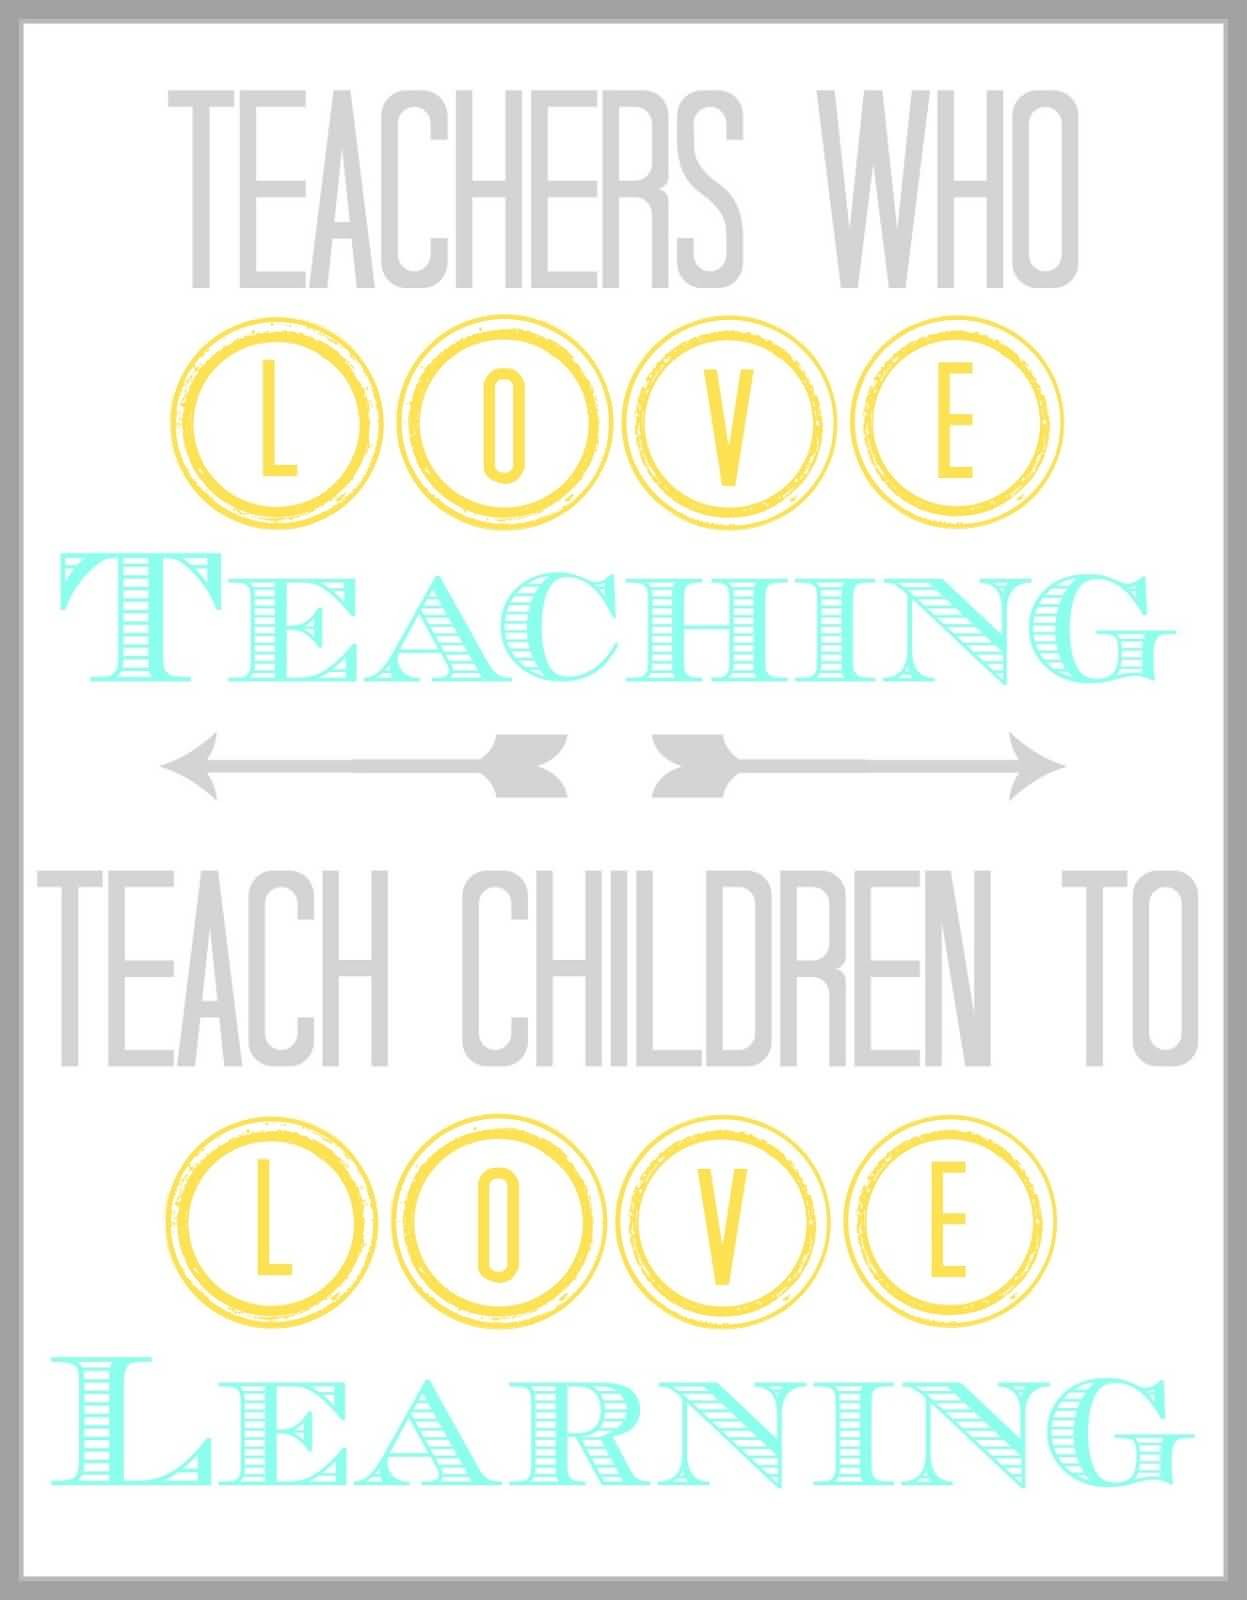 Teaching Quotes Teach Quotes Teachers Who Teaching Teach Children To Learning